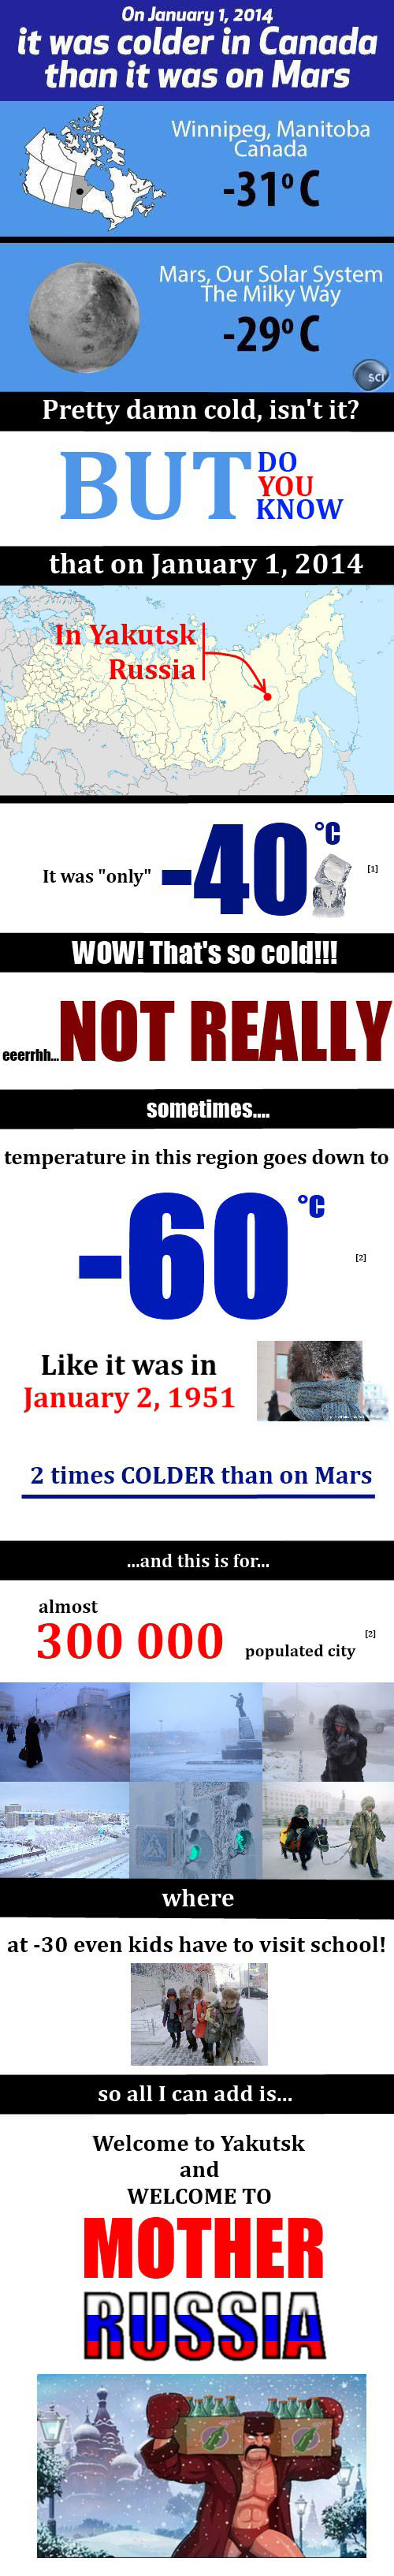 What do you think is really cold?